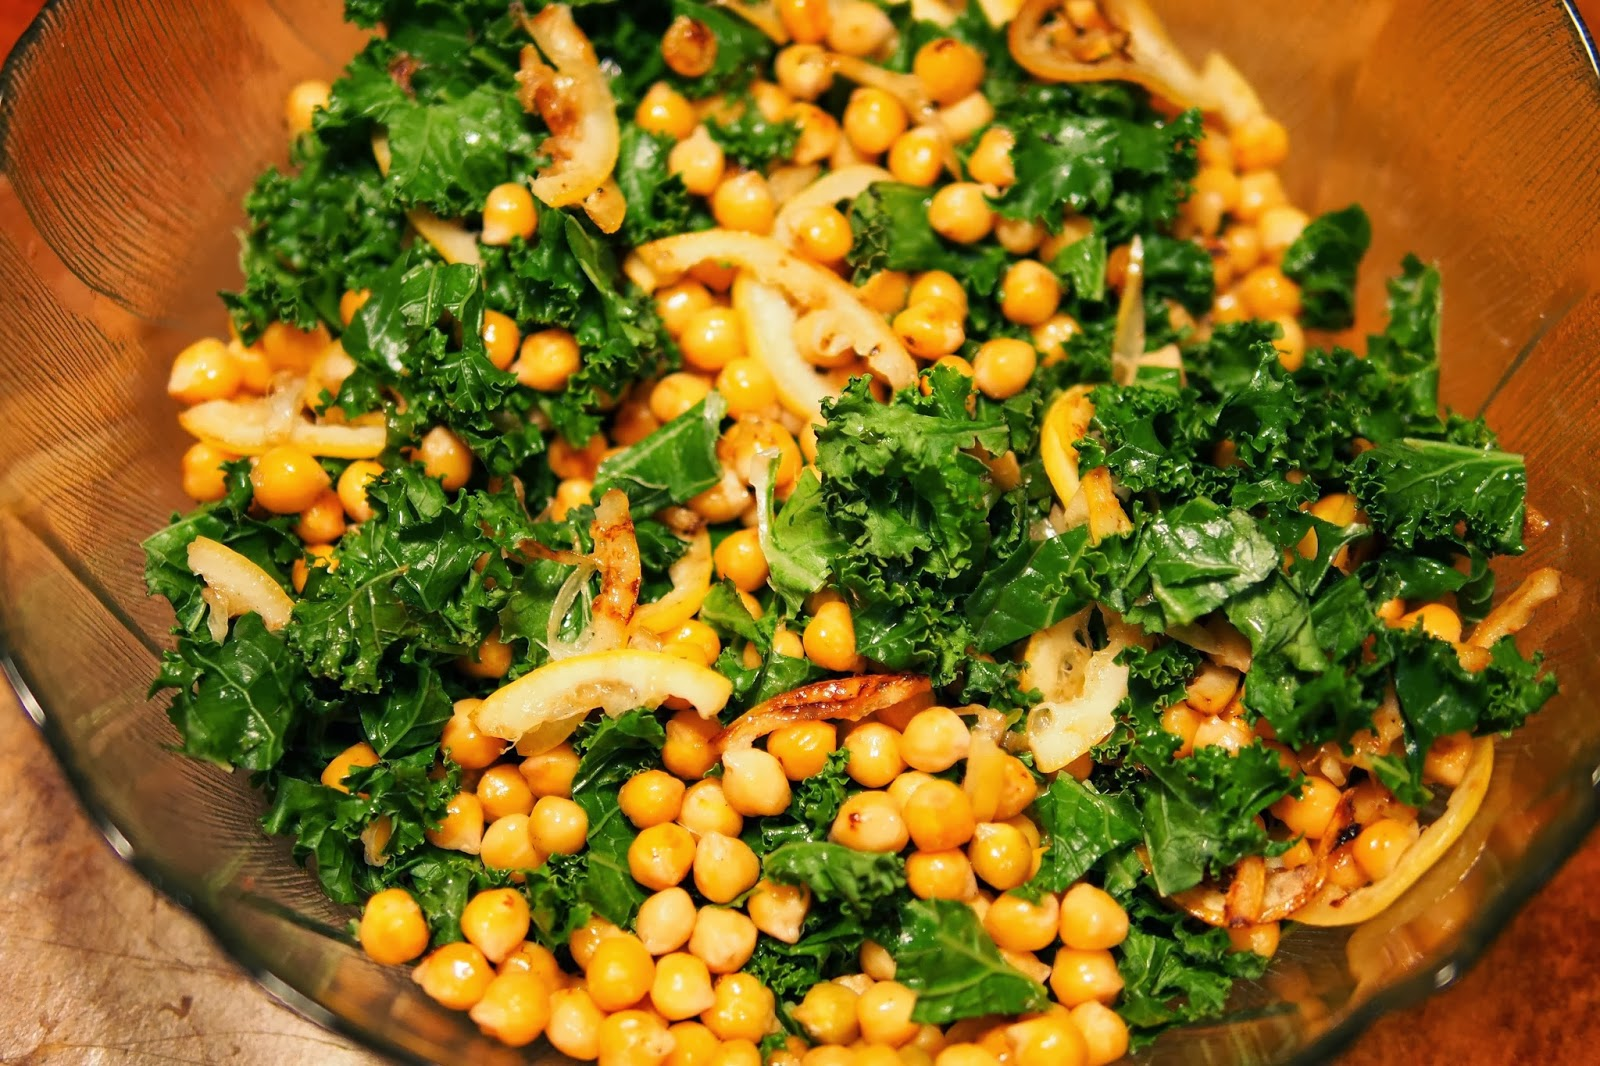 Eat, Belch, Fart: Toasted Kale & Pan Fried Chickpea Salad